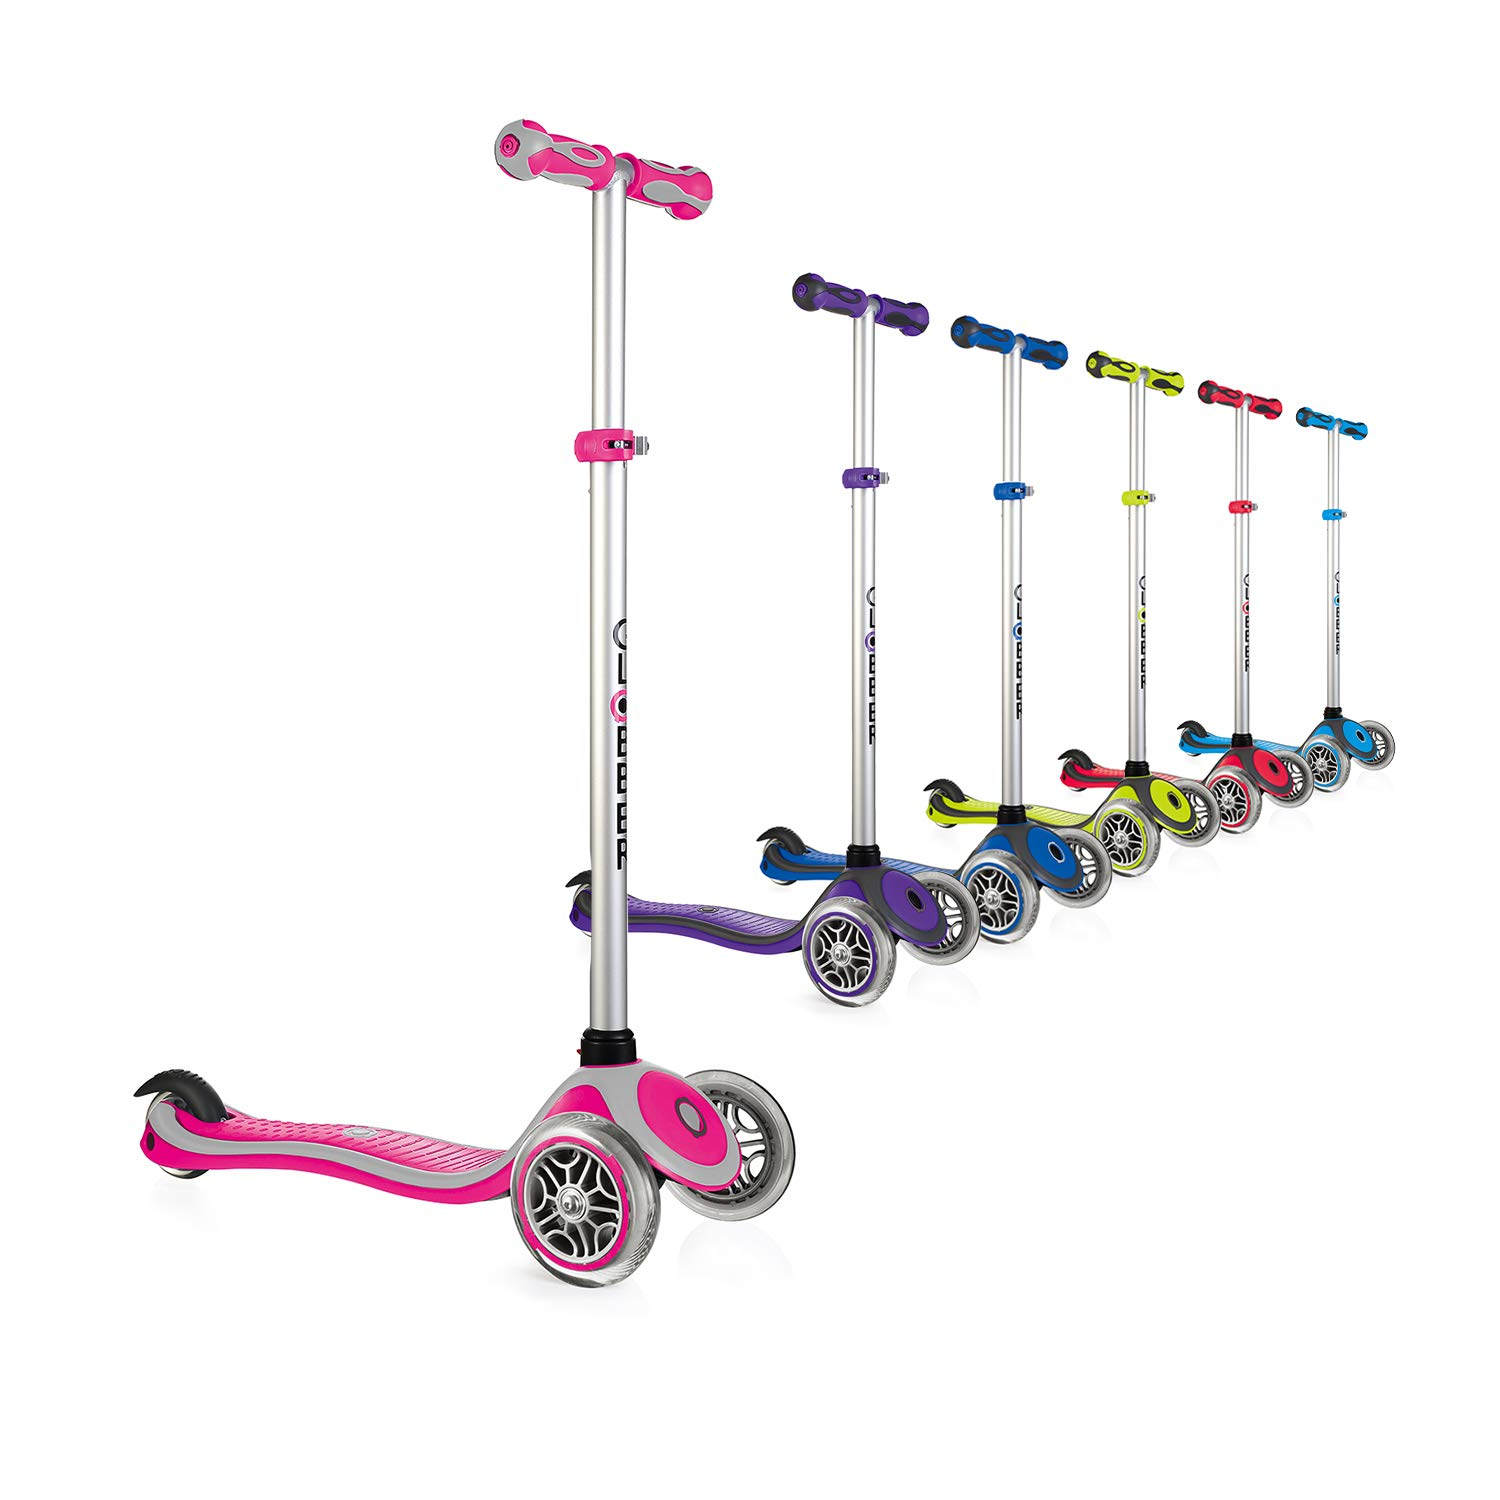 Globber Primo 3 Wheel Adjustable Height Scooter (Pink/Gray) by Globber